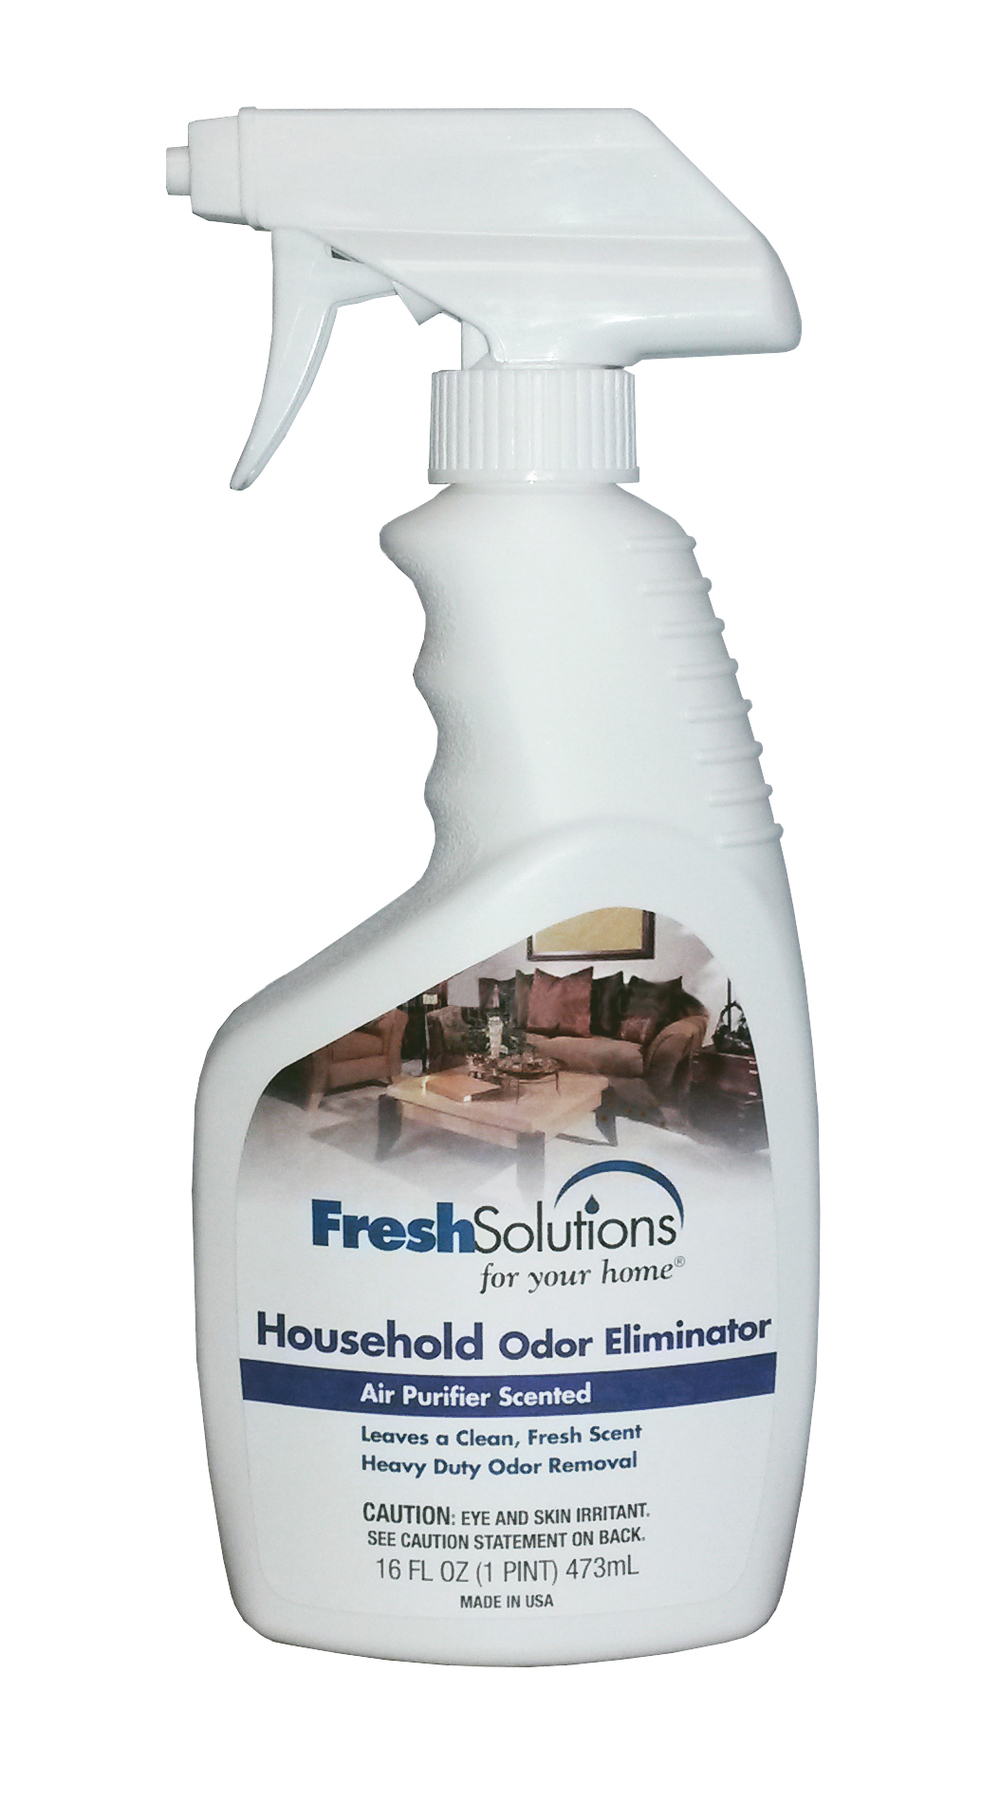 Household Odor Eliminator